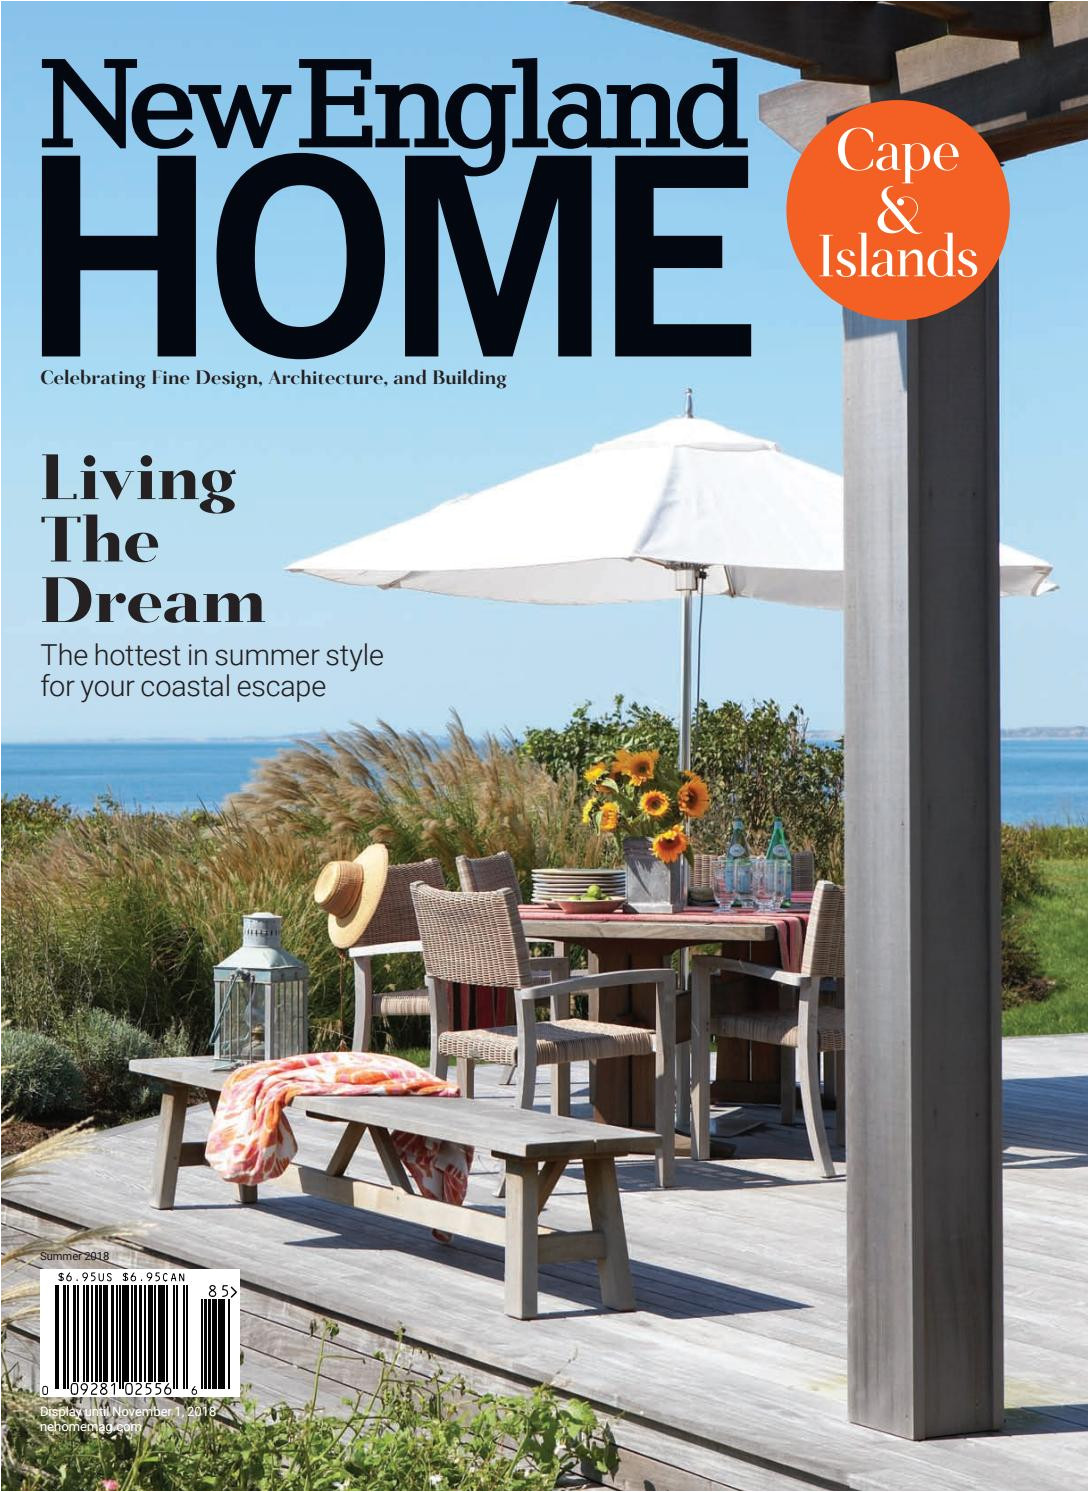 new england home cape and islands 2018 by new england home magazine llc issuu